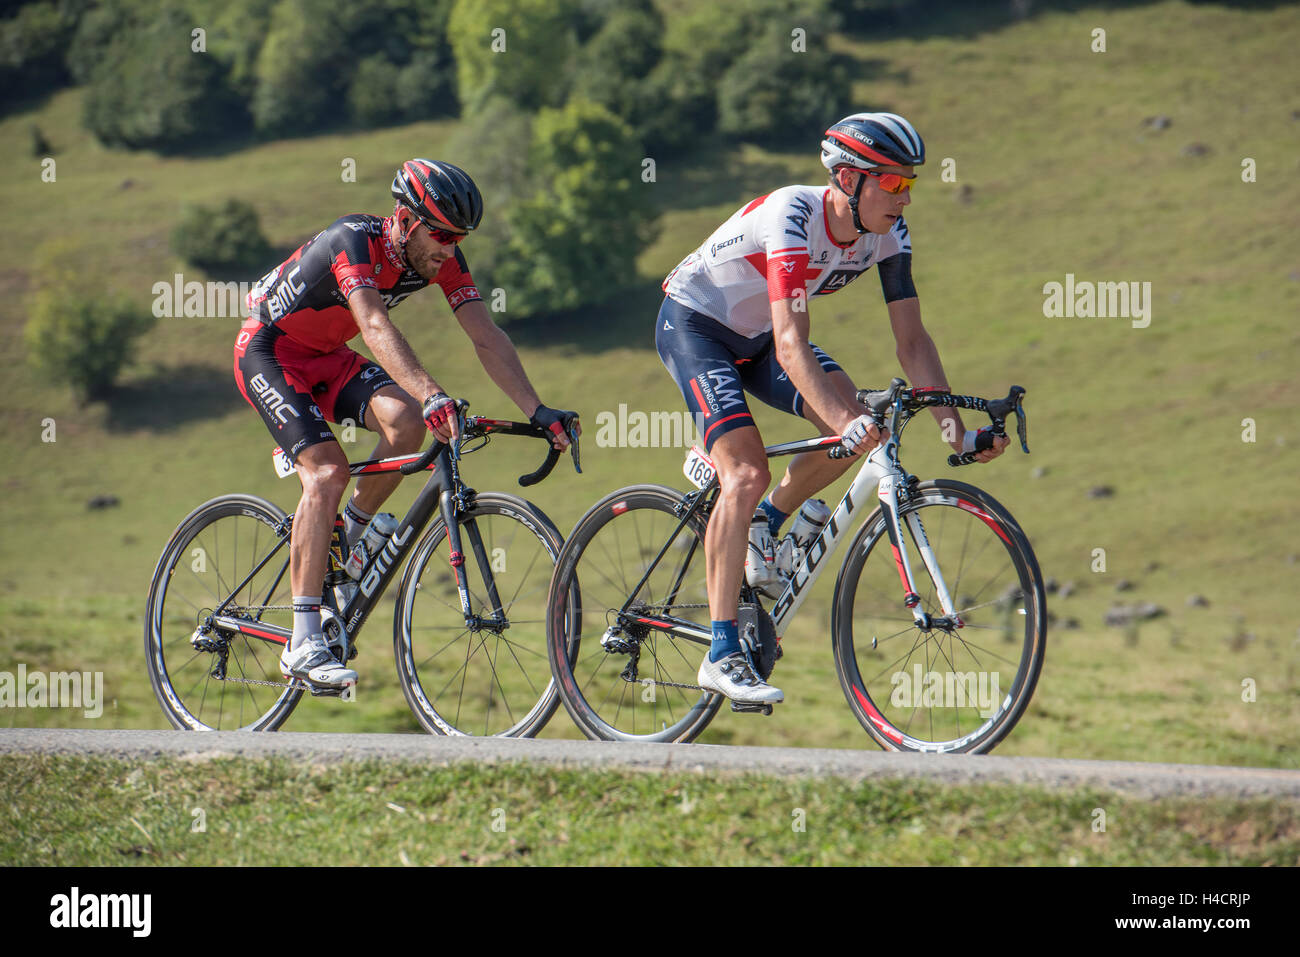 Marcel Wyss leading Danilo Wyss in la Vuelta Espagne on the Cole de Marie Blanque in the French Pyrenees. - Stock Image